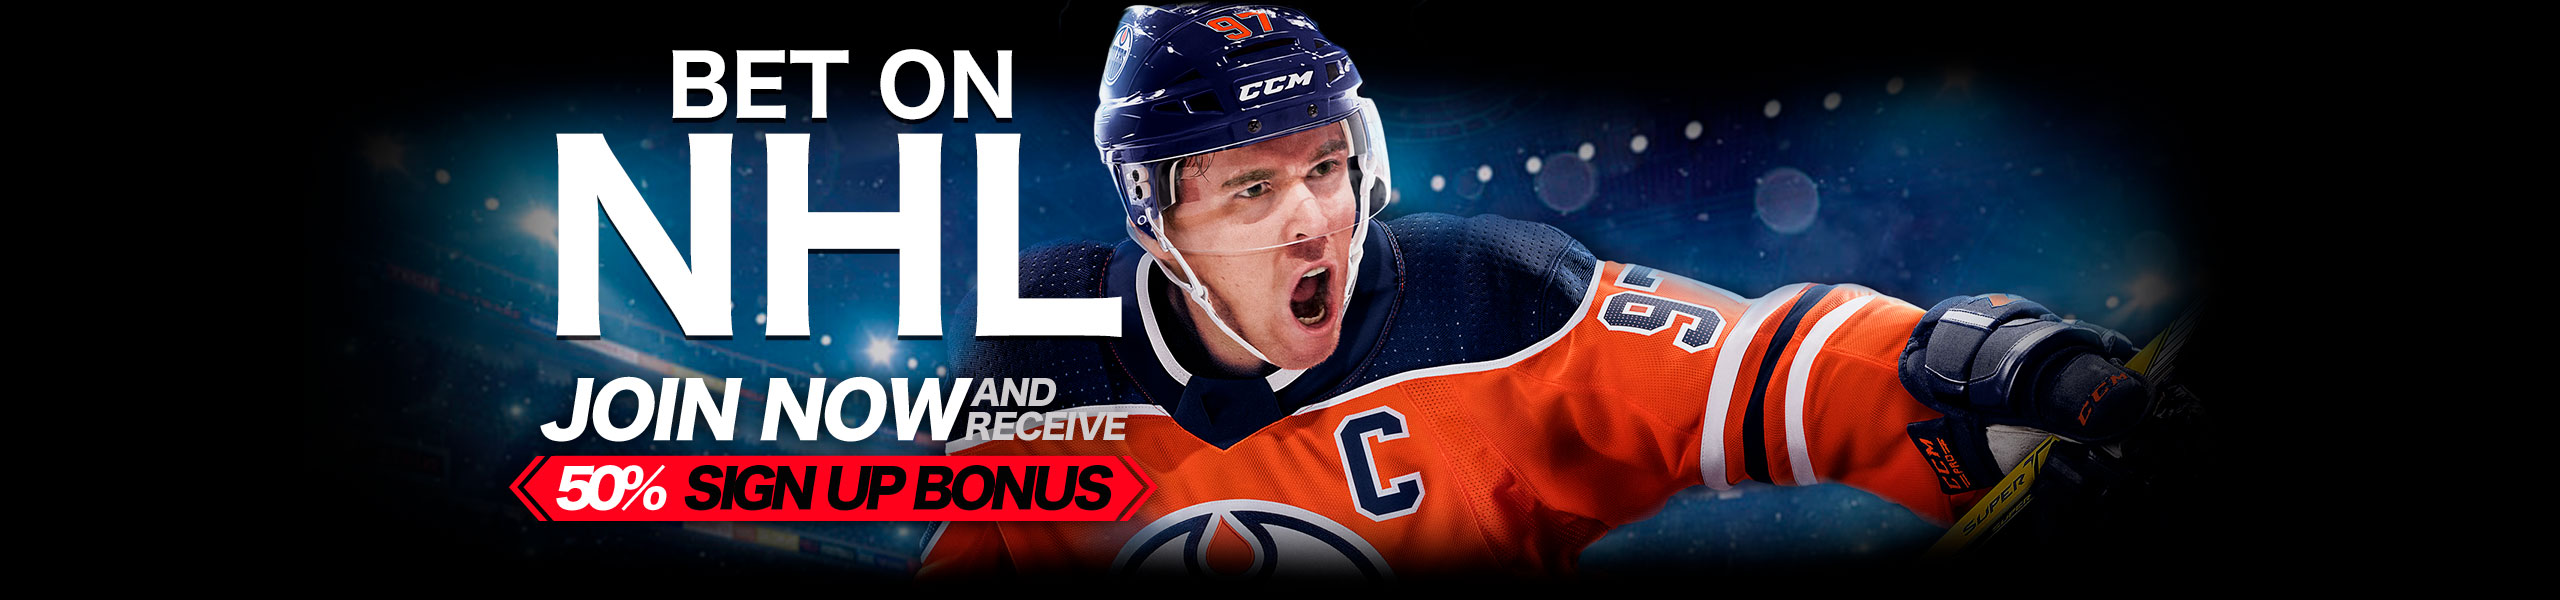 Bet on NHL 2018 50% Bonus